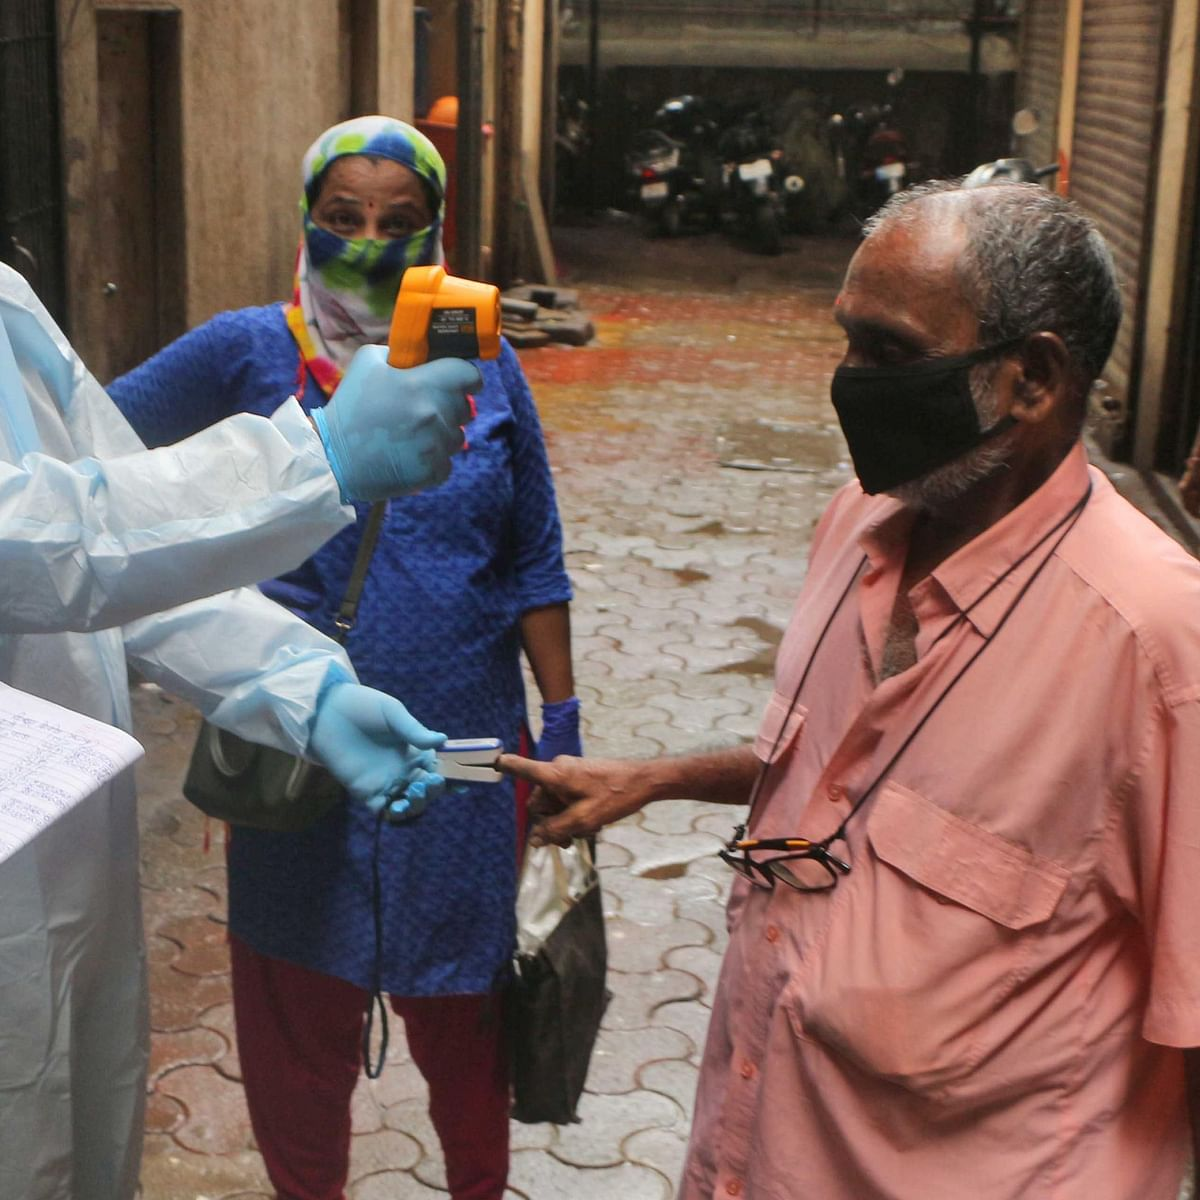 Coronavirus in Pune and Pimpri Chinchwad: PMC's COVID-19 tally rises by 1,548, PCMC records 812 new cases